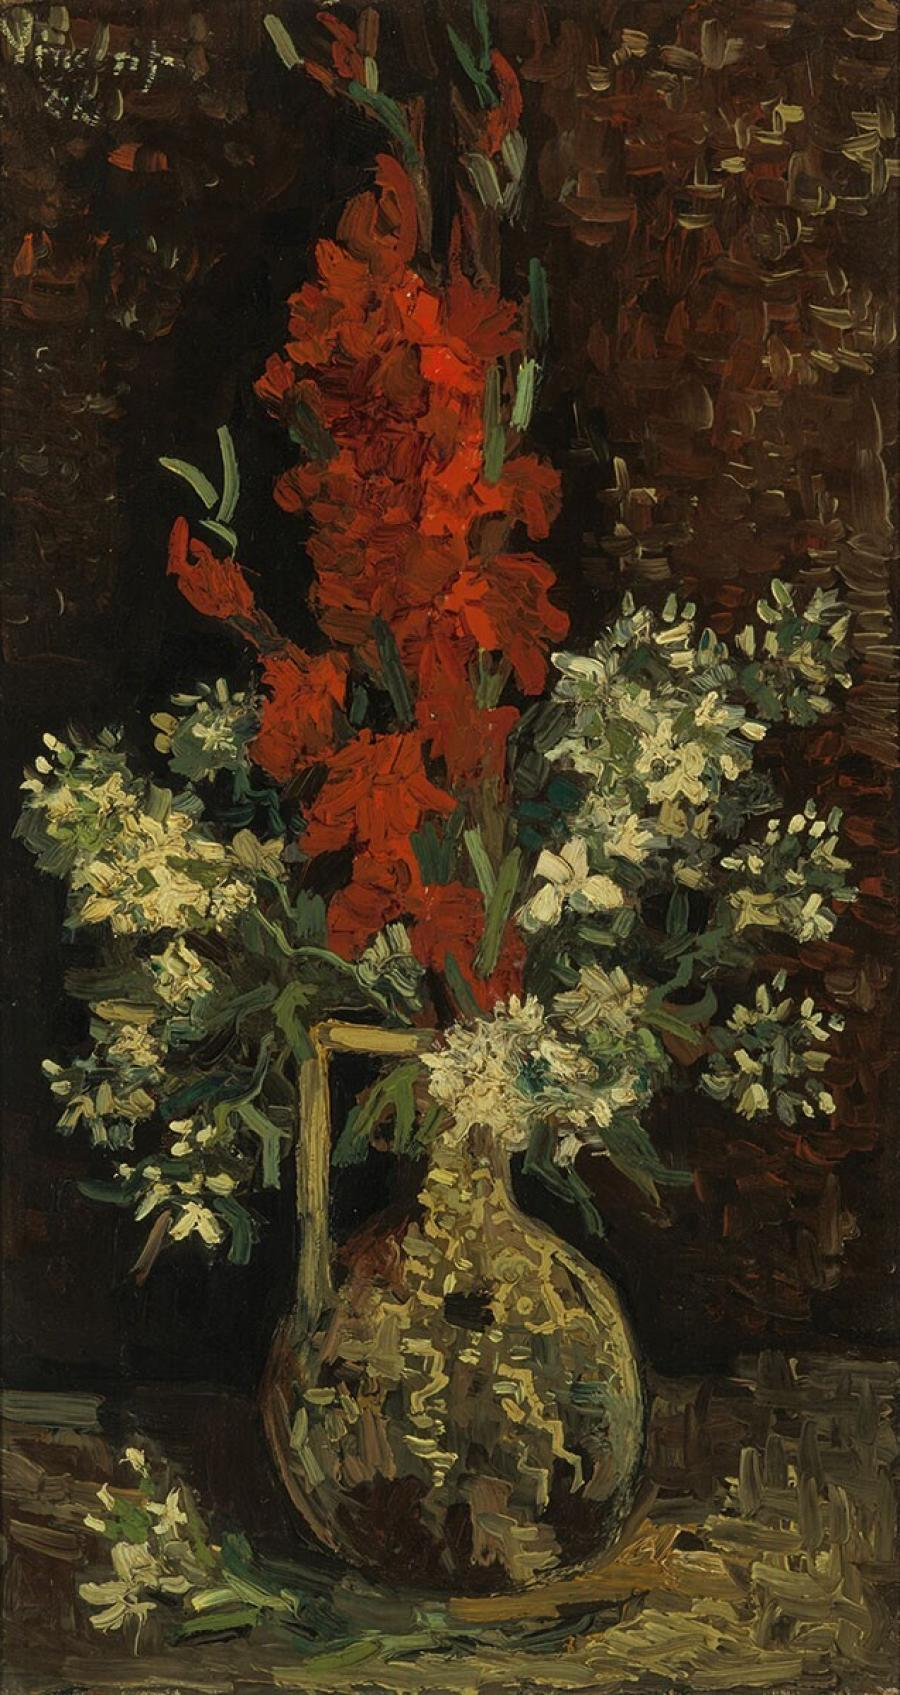 Vase with Red and White Flowers